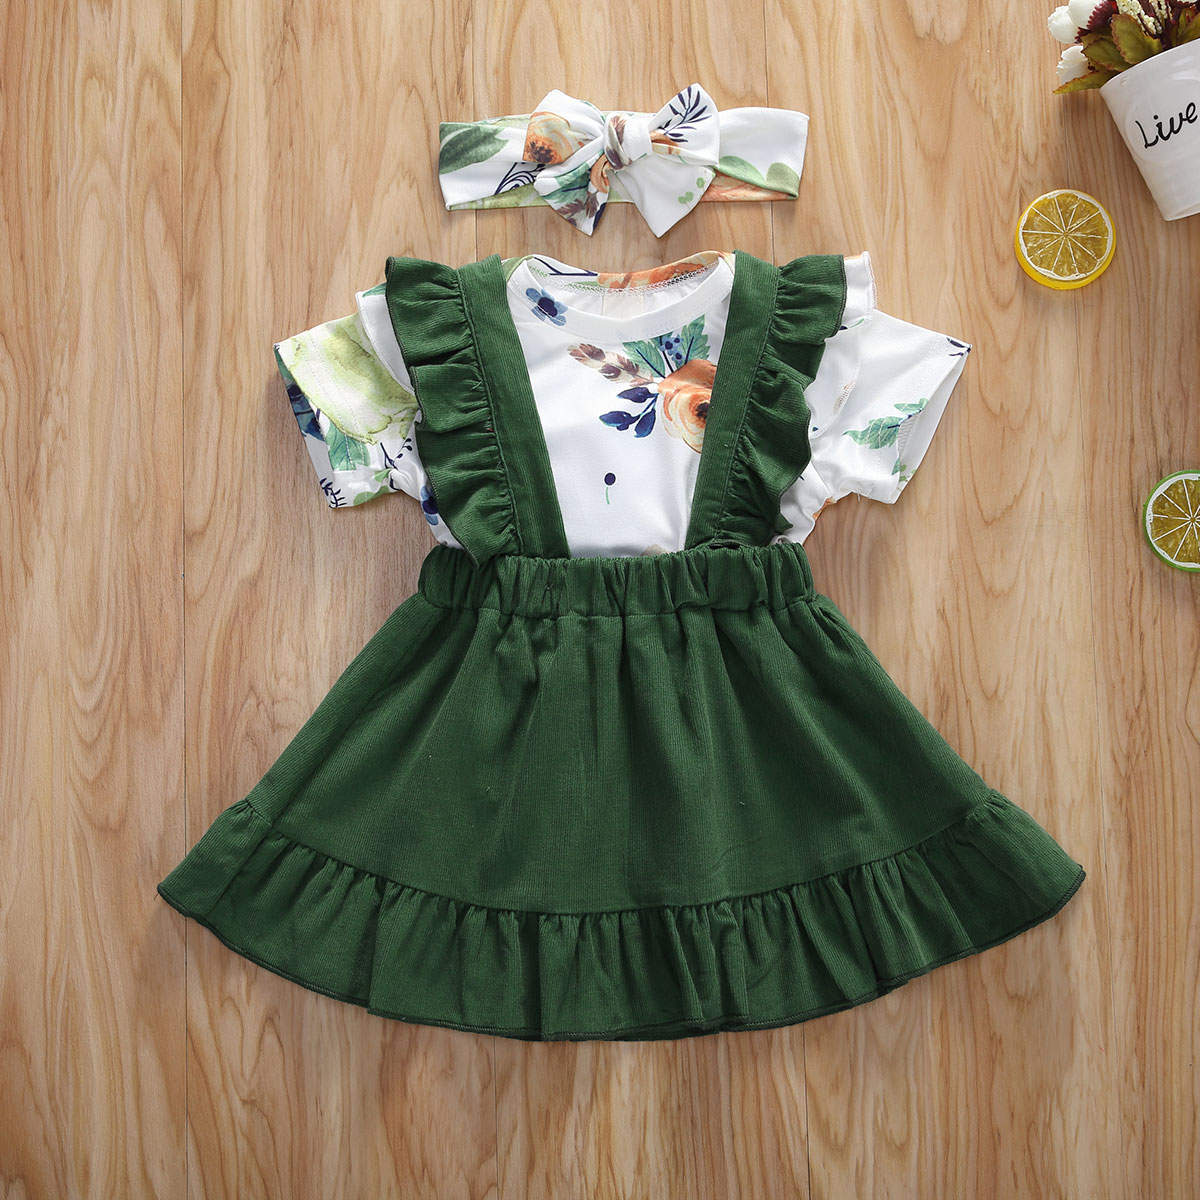 Pudcoco Newborn Baby Girl Clothes Flower Print Short Sleeve Romper Tops Ruffle Strap Skirt Headband 3Pcs Outfits Sunsuit Set